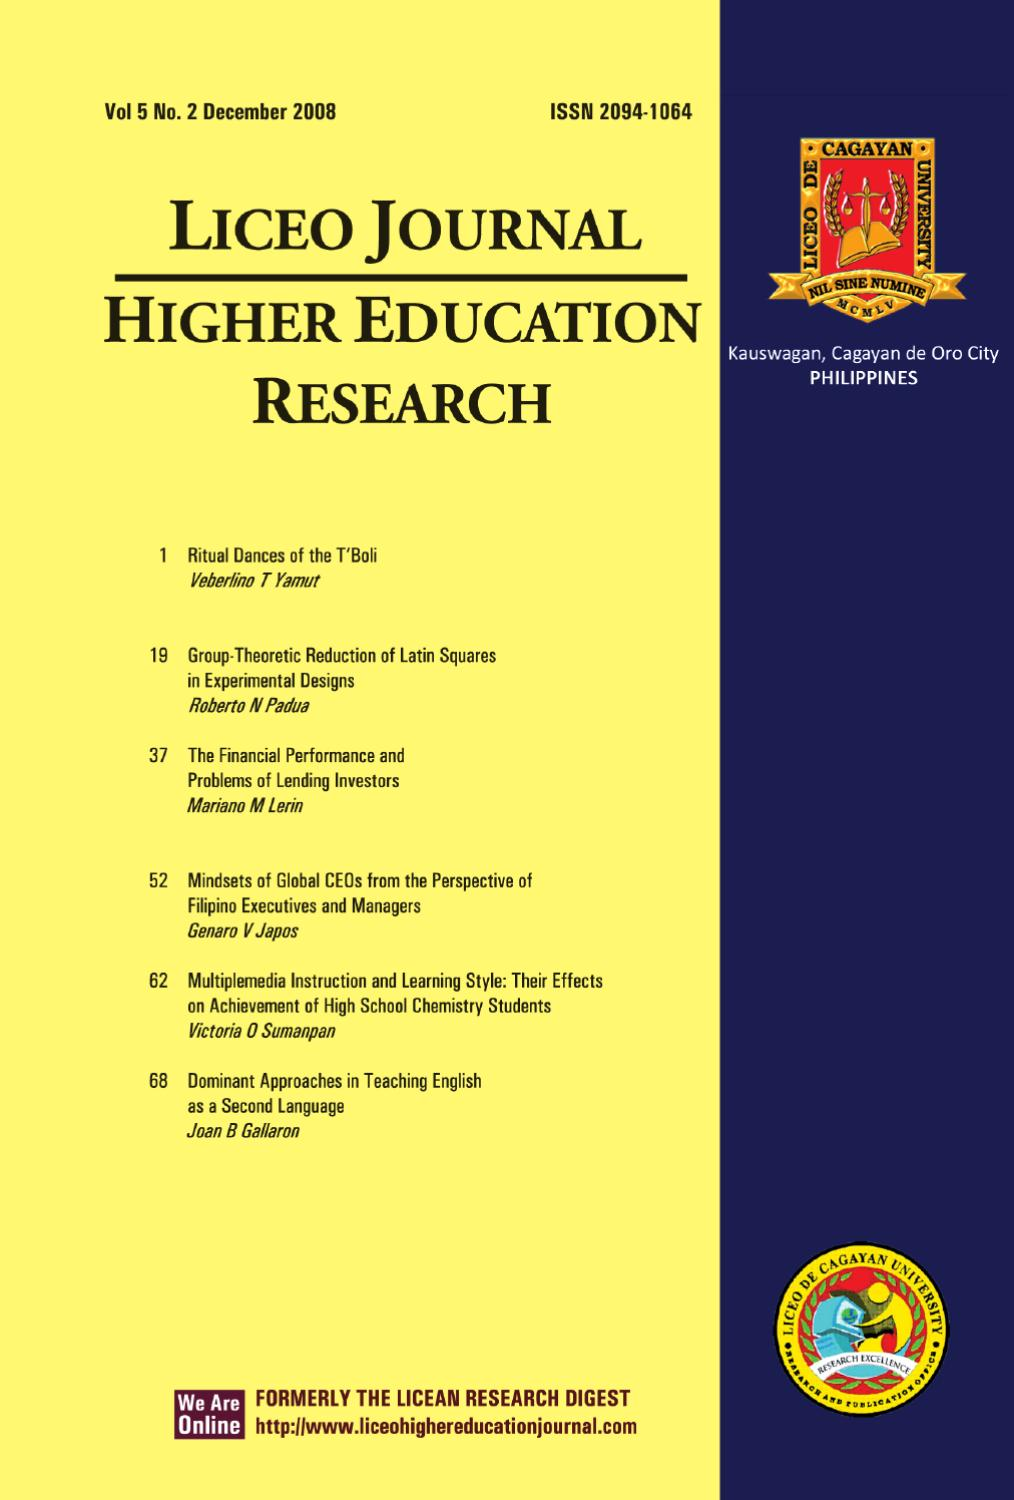 research in higher education journal Research in higher education (rihe) publishes studies that examine issues  pertaining to postsecondary education the journal is open to studies using a  wide.